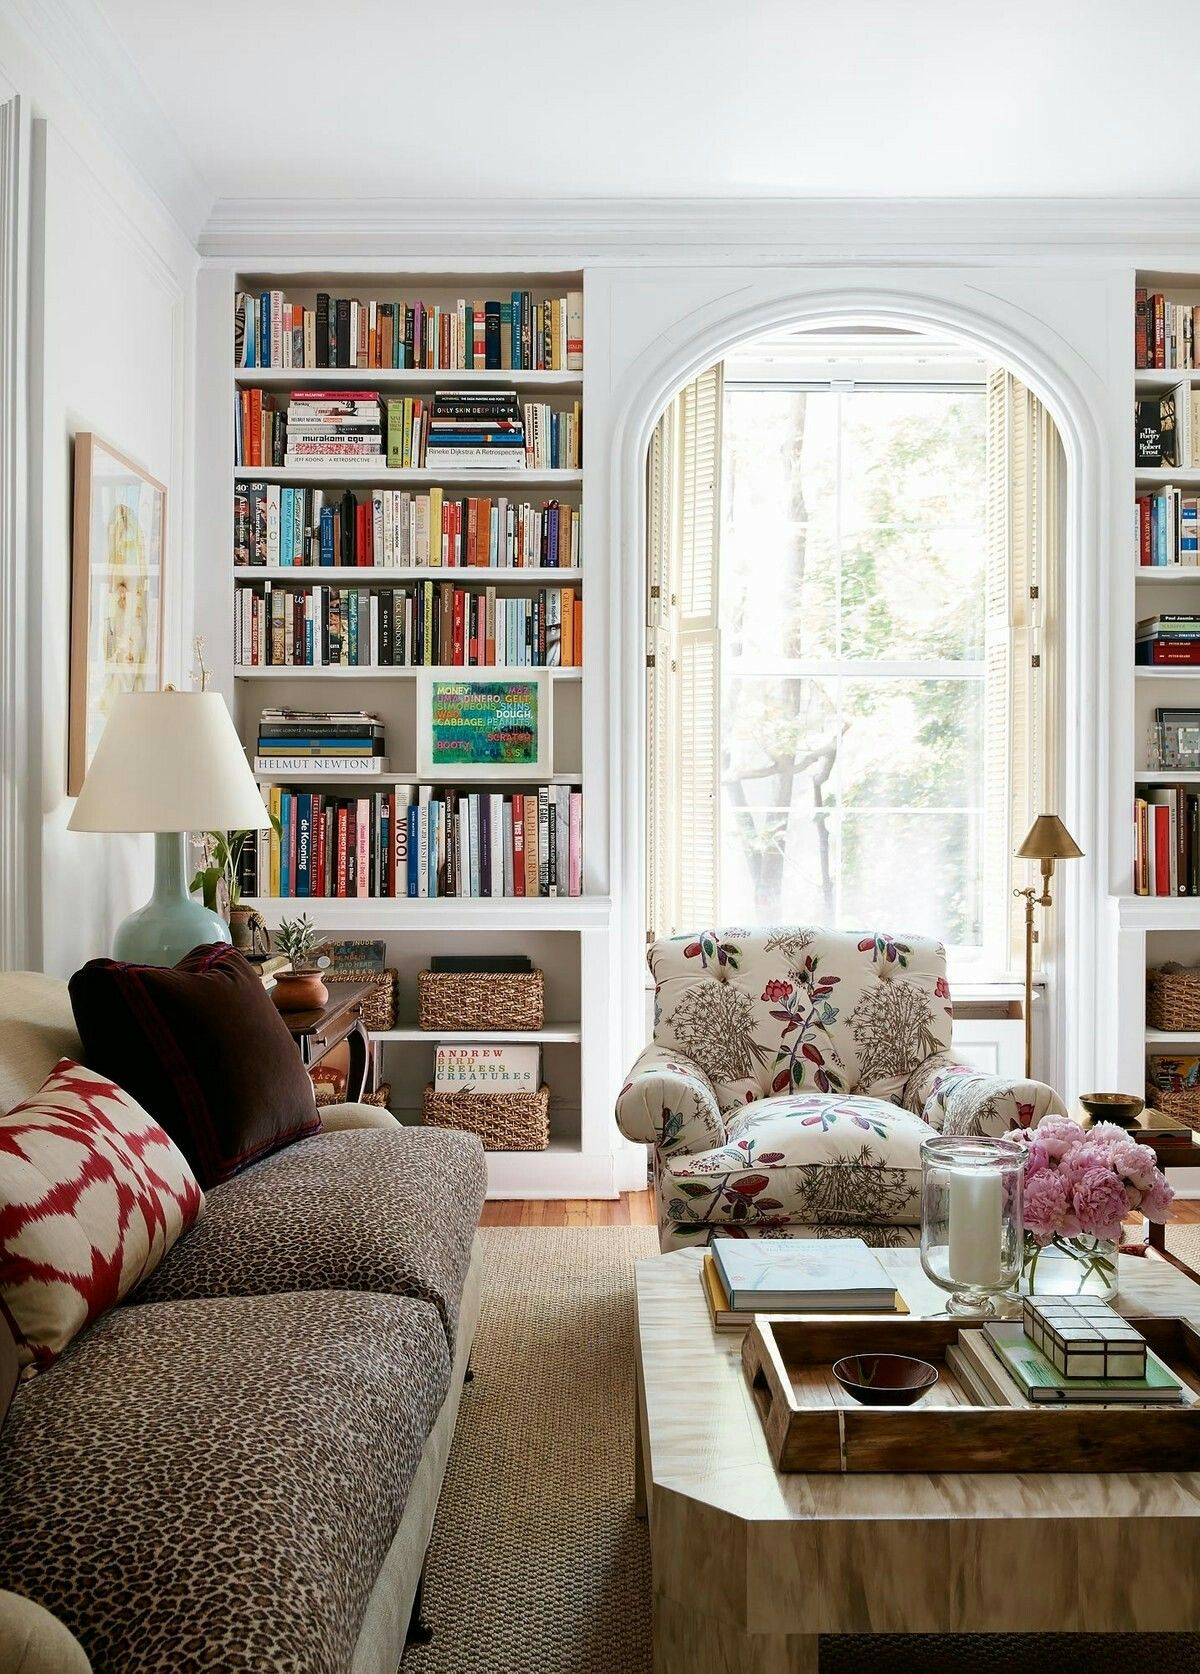 Classic american home interior for maggieus room  window seat with book shelf  book nooks u home